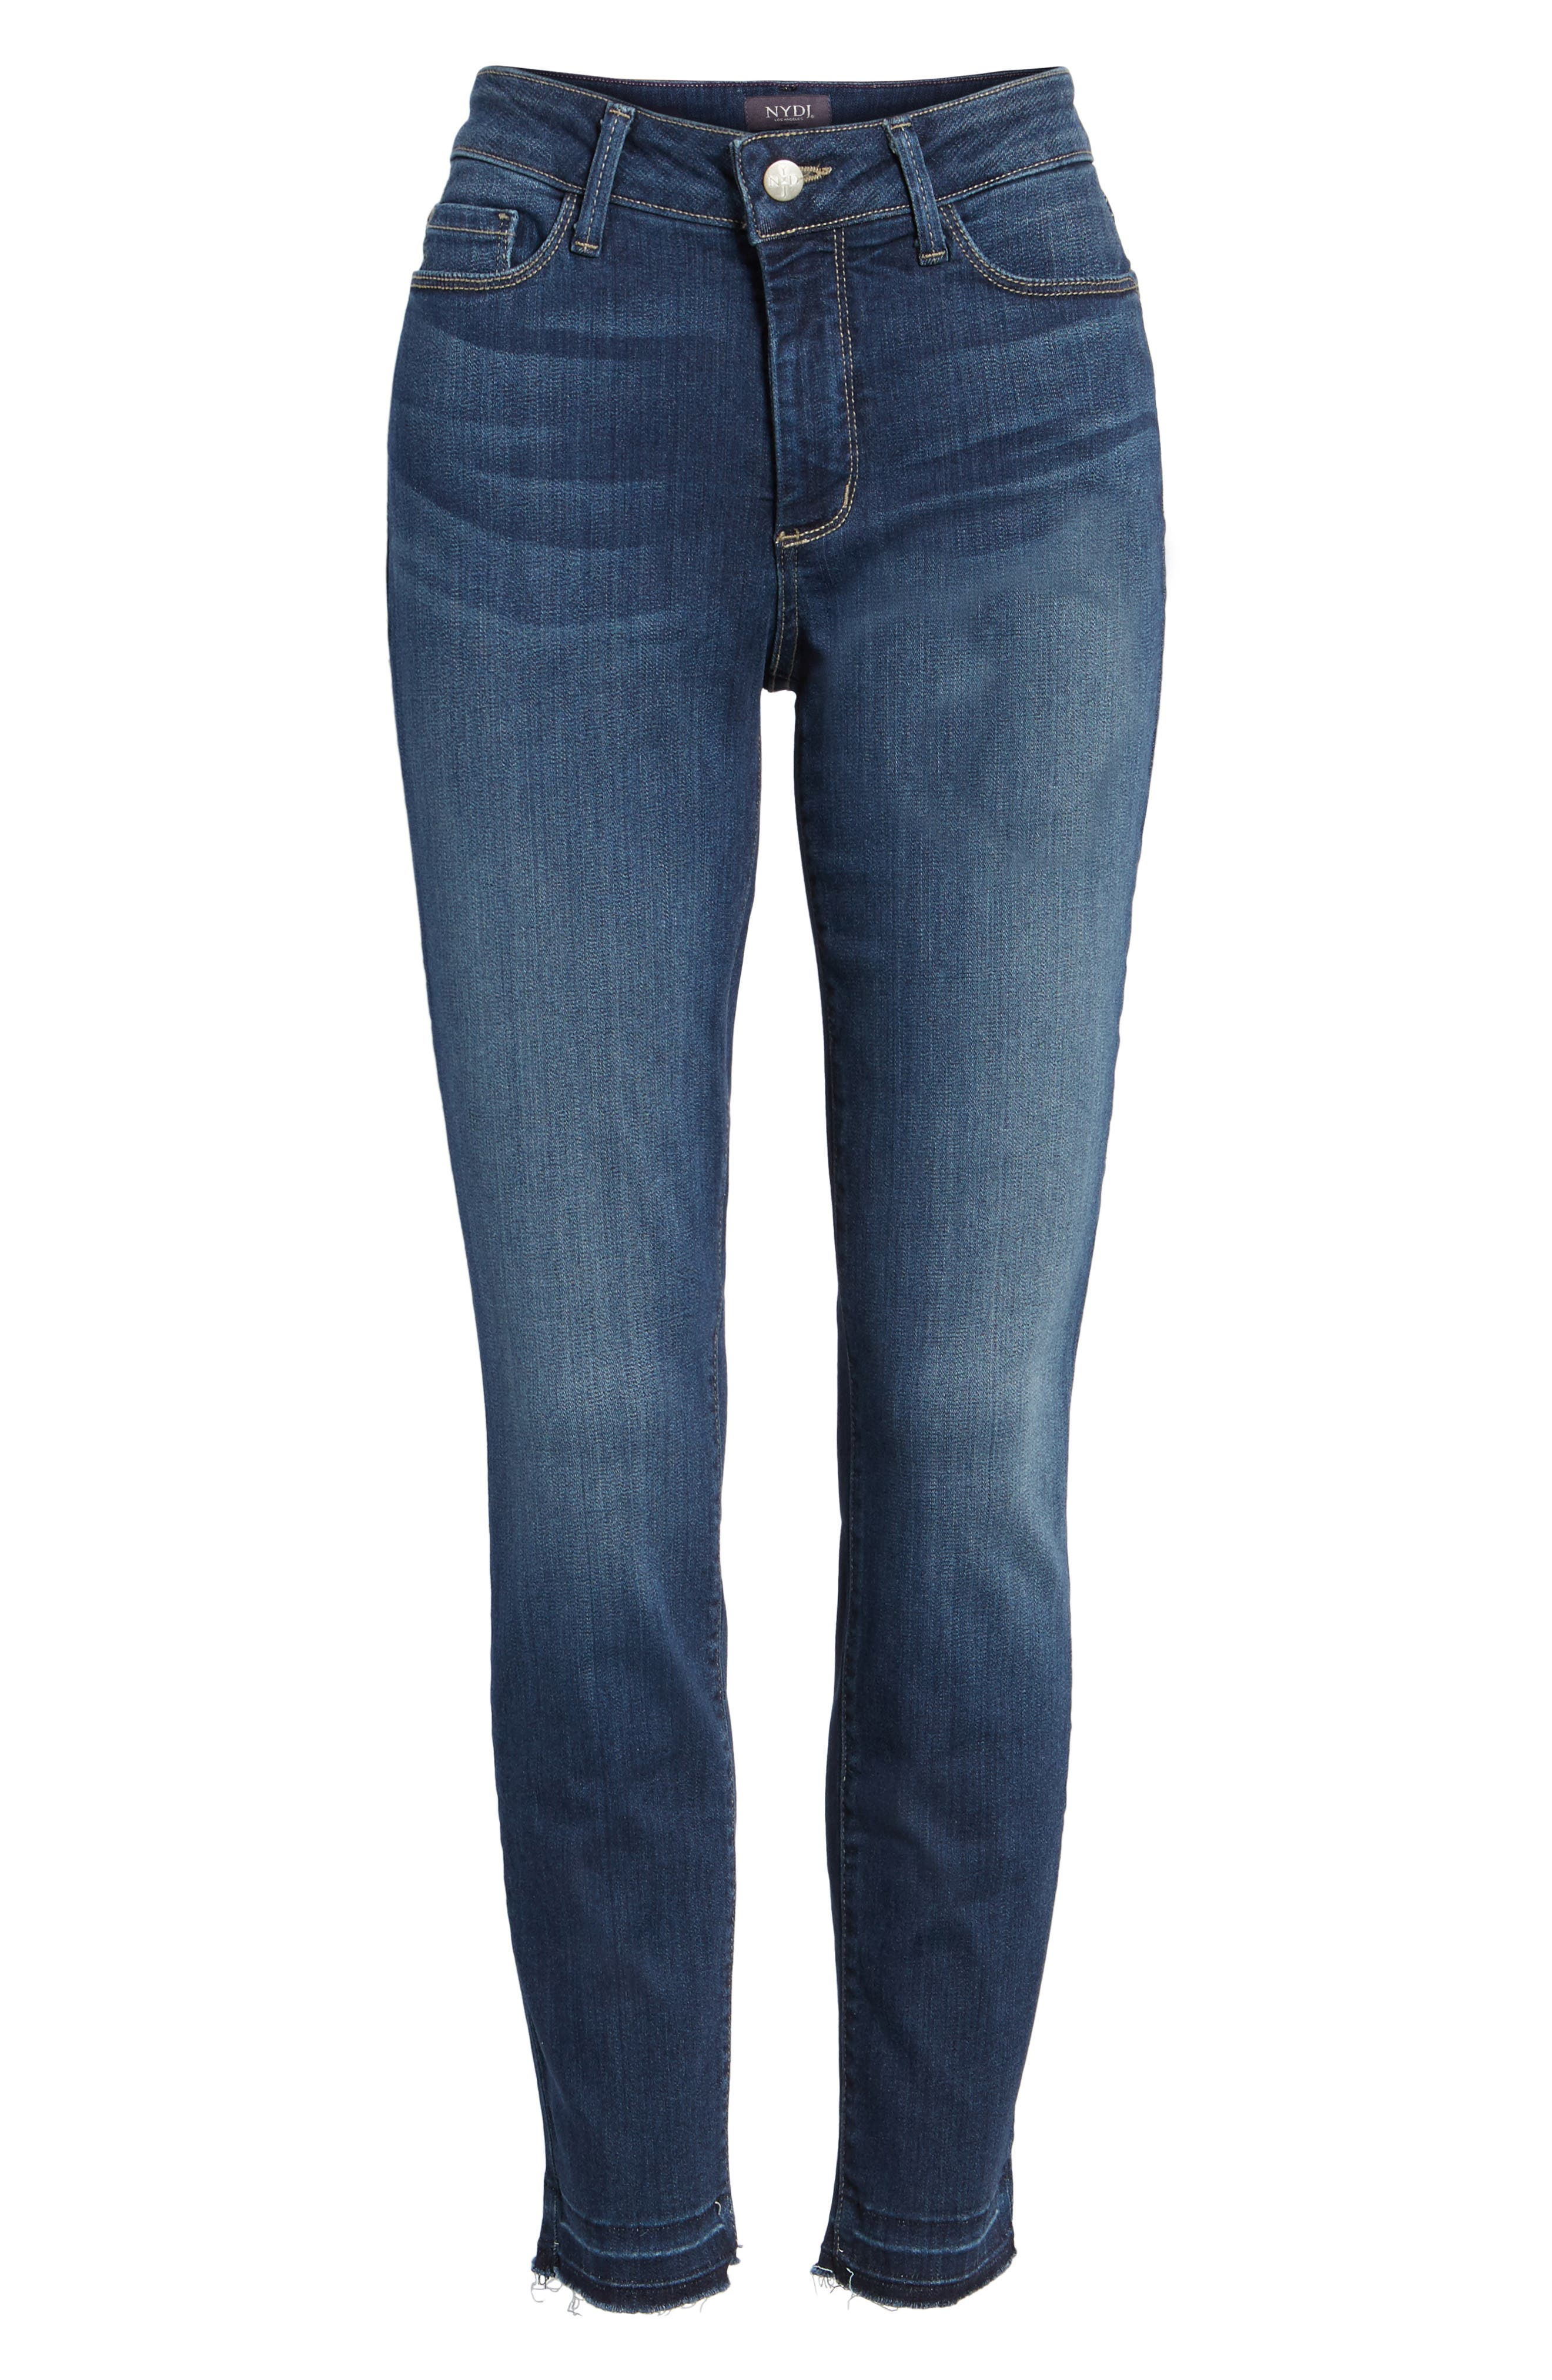 Ami Release Hem Stretch Skinny Jeans,                             Alternate thumbnail 7, color,                             428